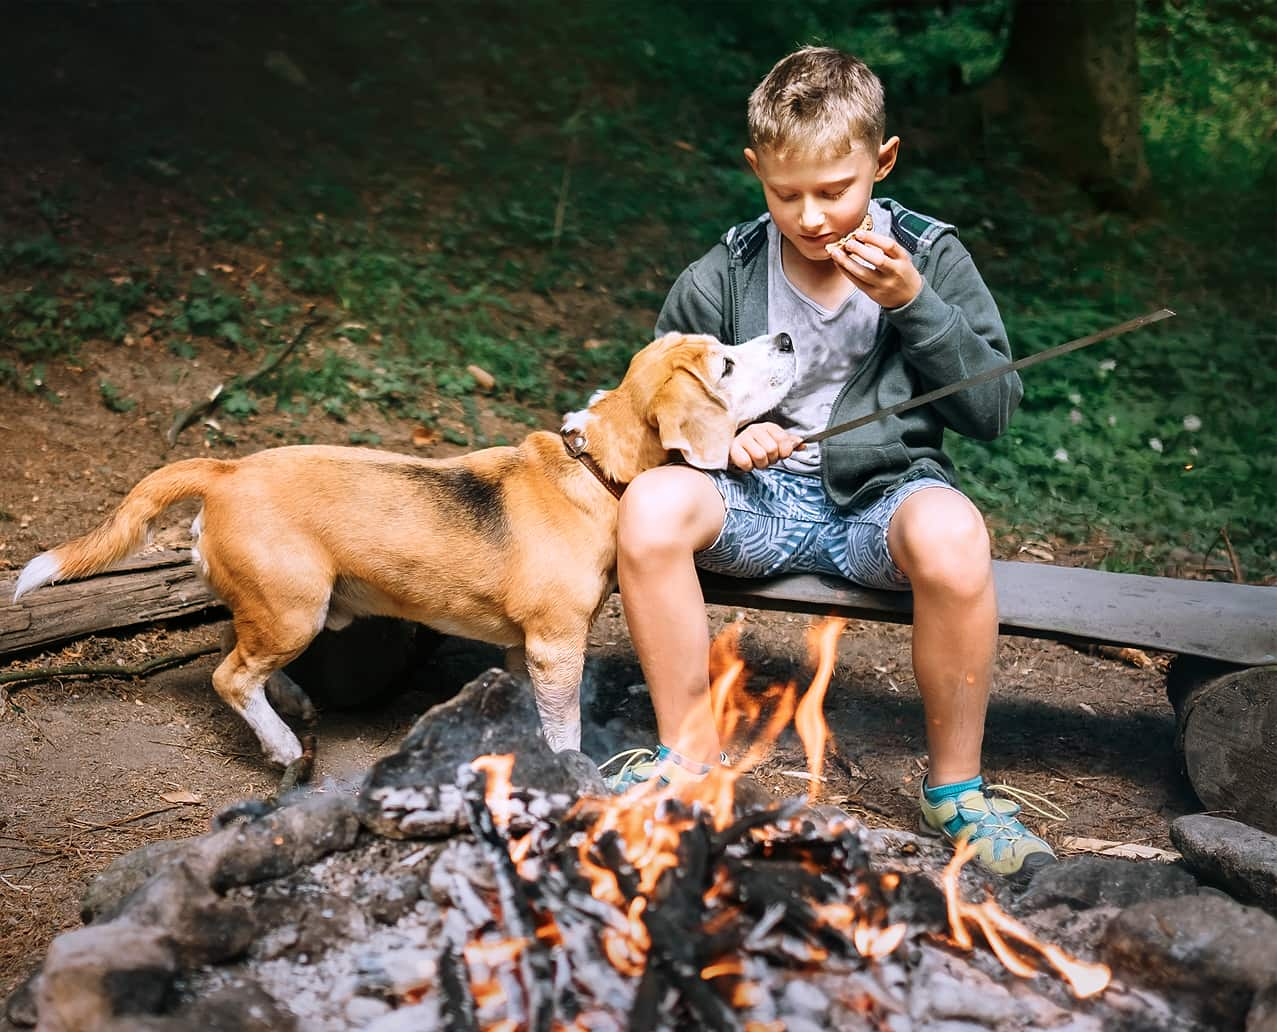 Boy sitting and eating with a stick next to firepit while beagle sniffs at food.